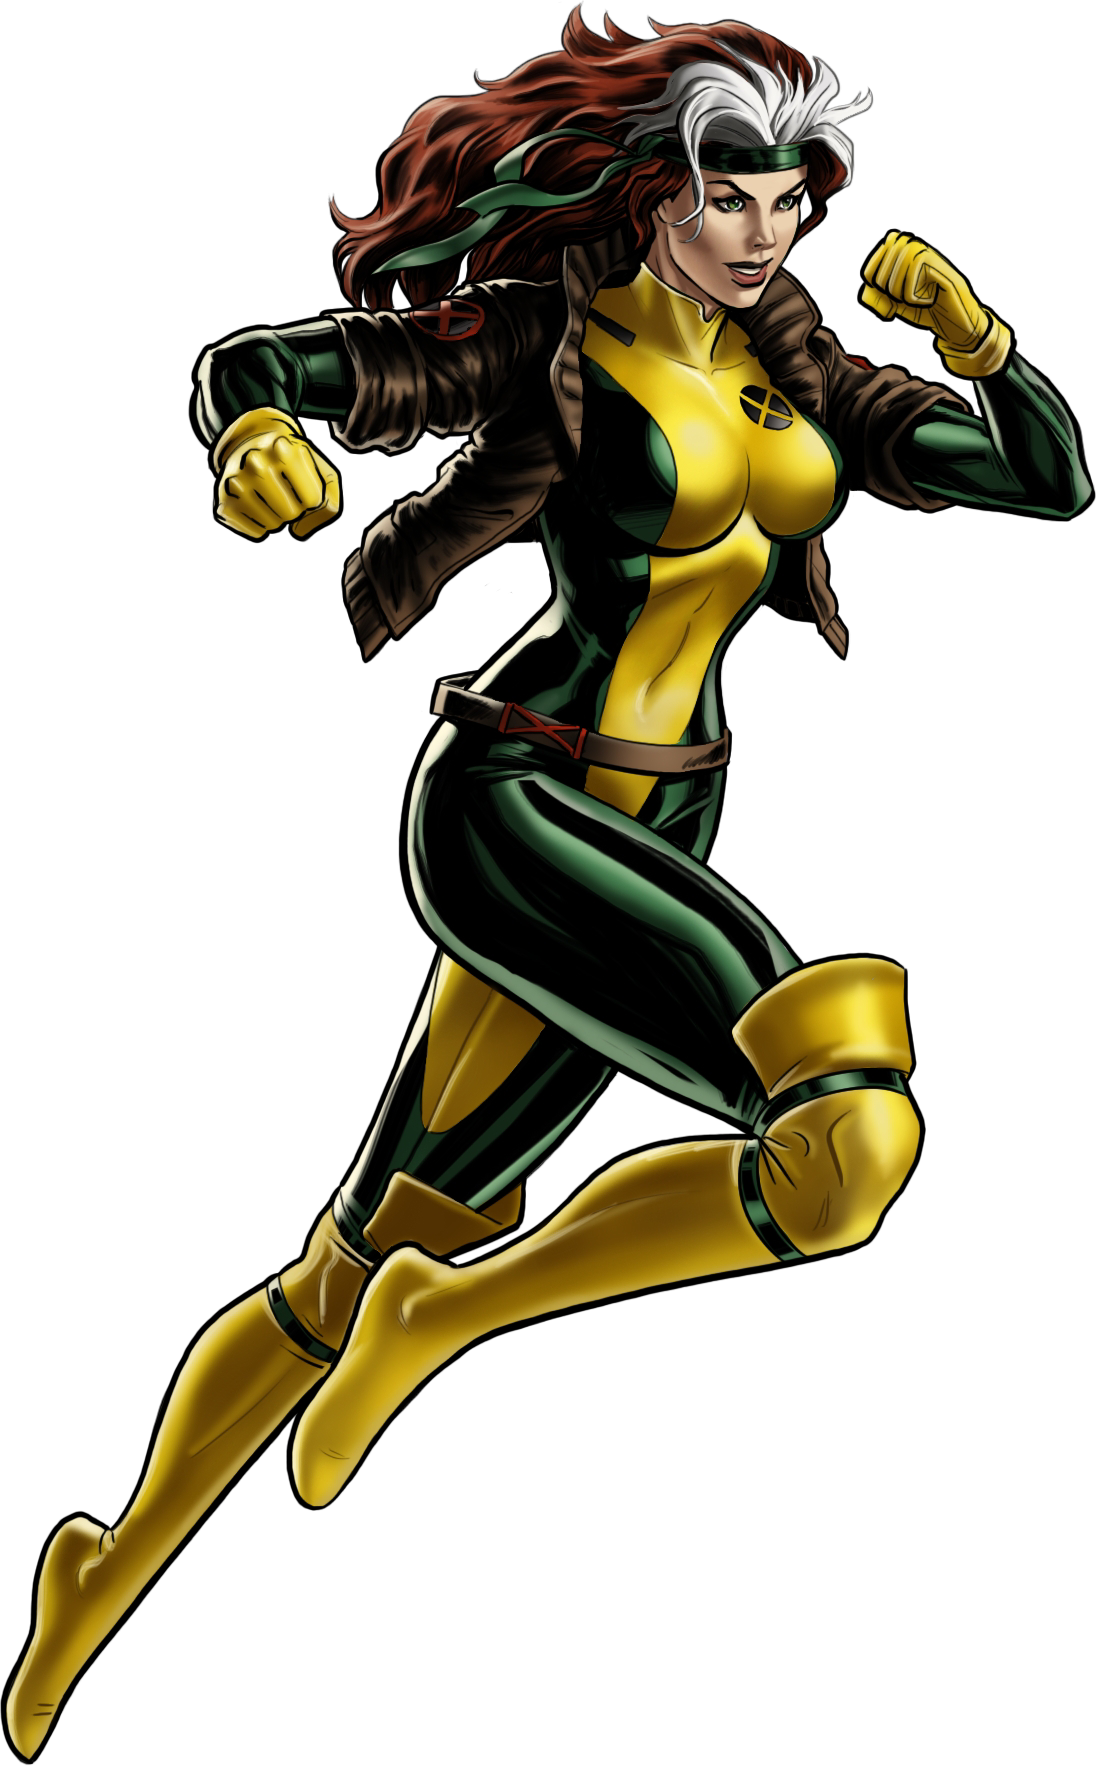 svg library stock Image rogue anna marie. X men clipart